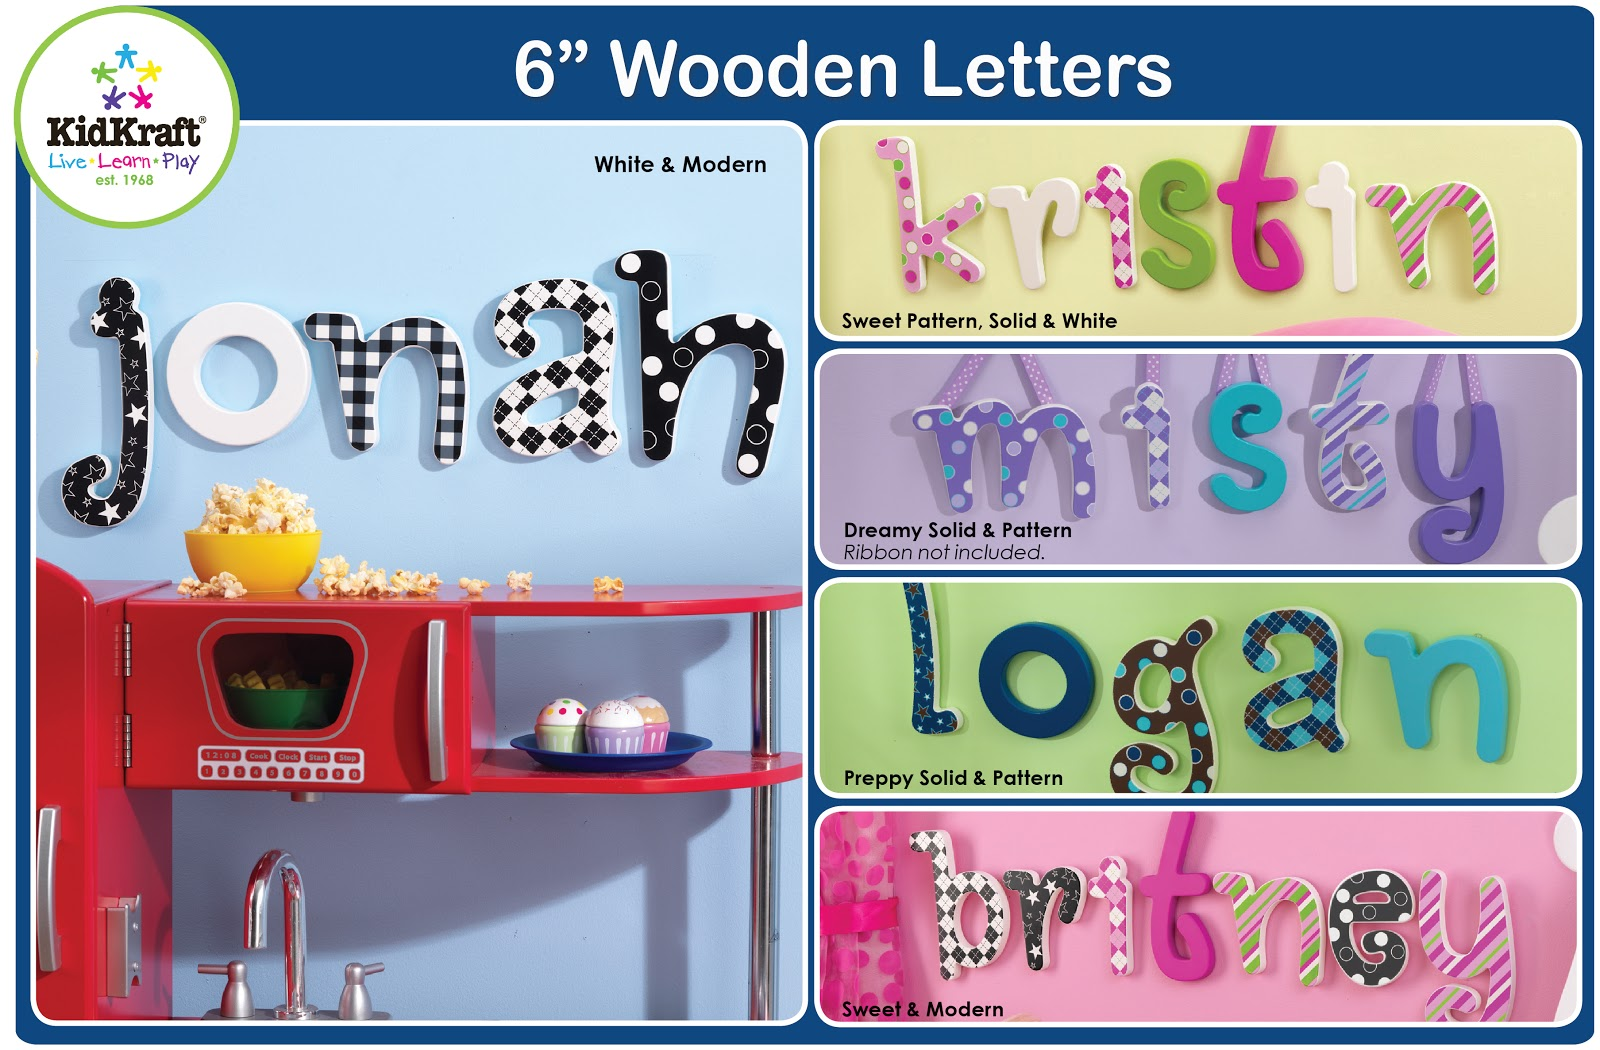 Kidkraft toys furniture colorful 6 wooden letters for Furniture 6 letters